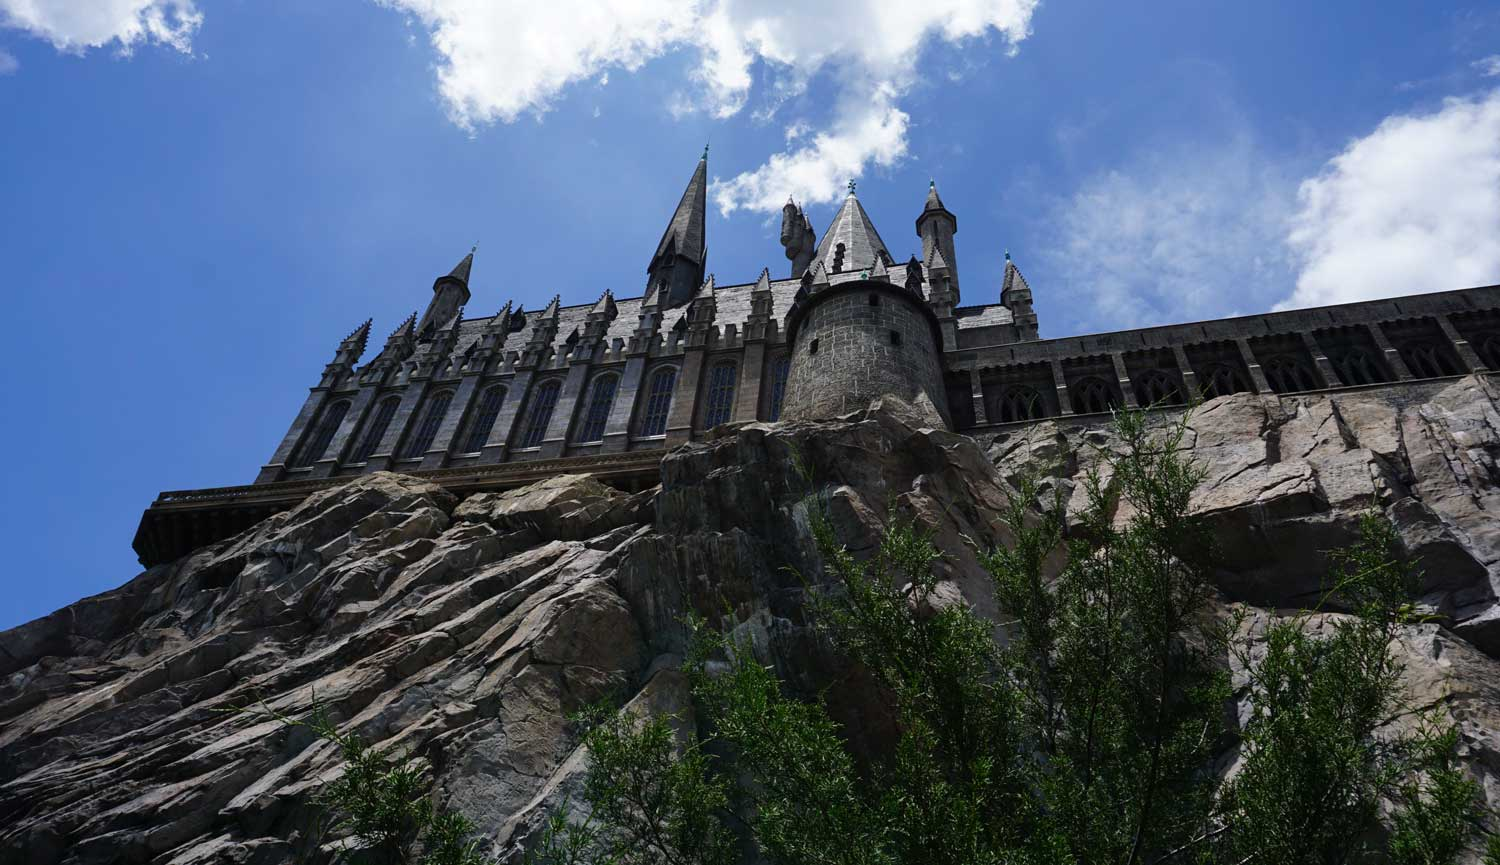 Hogwarts Castle towers at Islands of Adventure at the Wizarding World of Harry Potter.